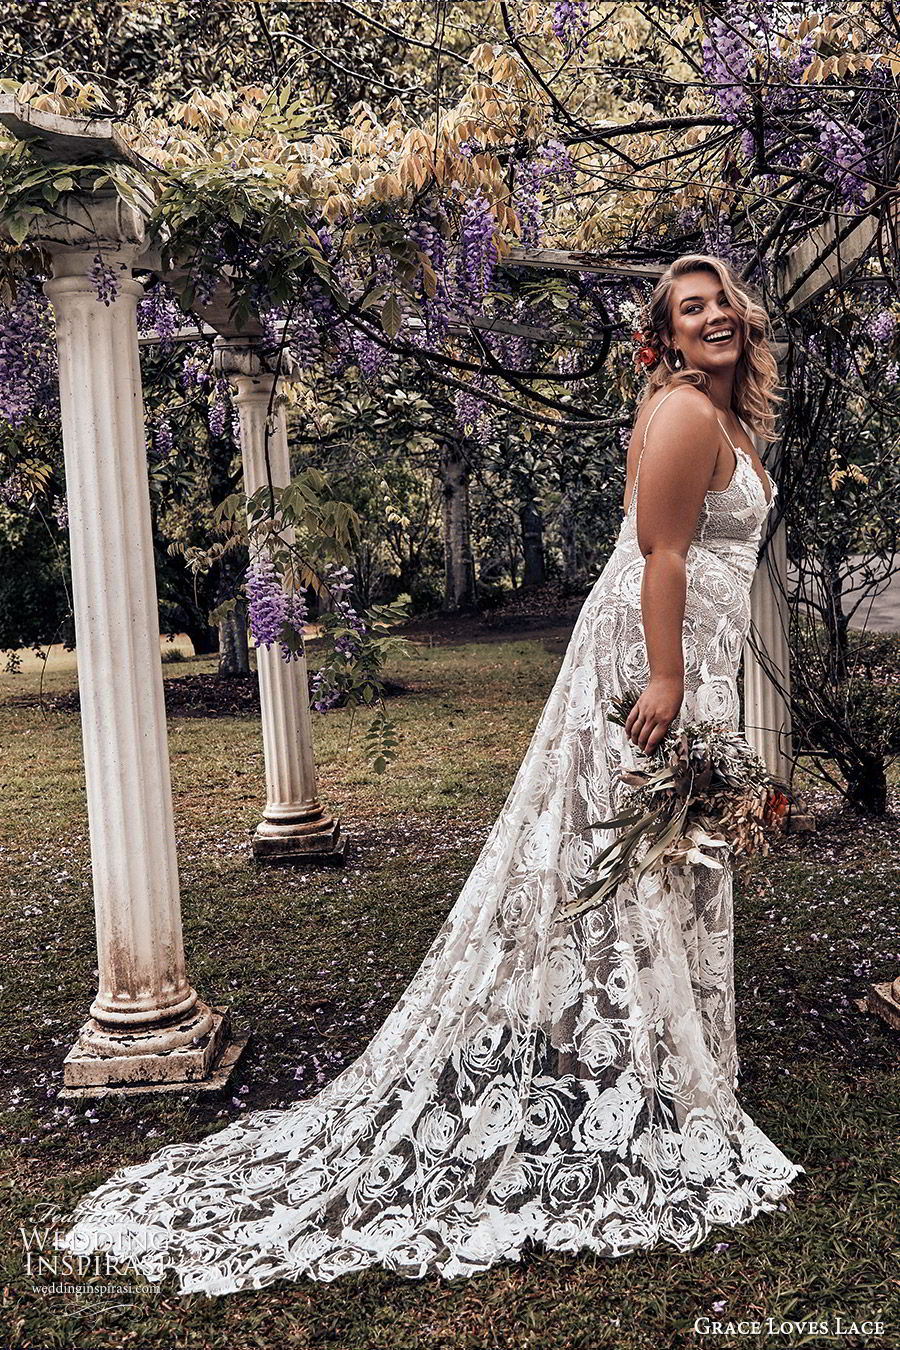 grace loves lace 2019 bridal sleeveless thin straps sweetheart necklines embellished lace soft a line trumpet wedding dress chapel train scoop back plus size bhoho romantic (6) sv